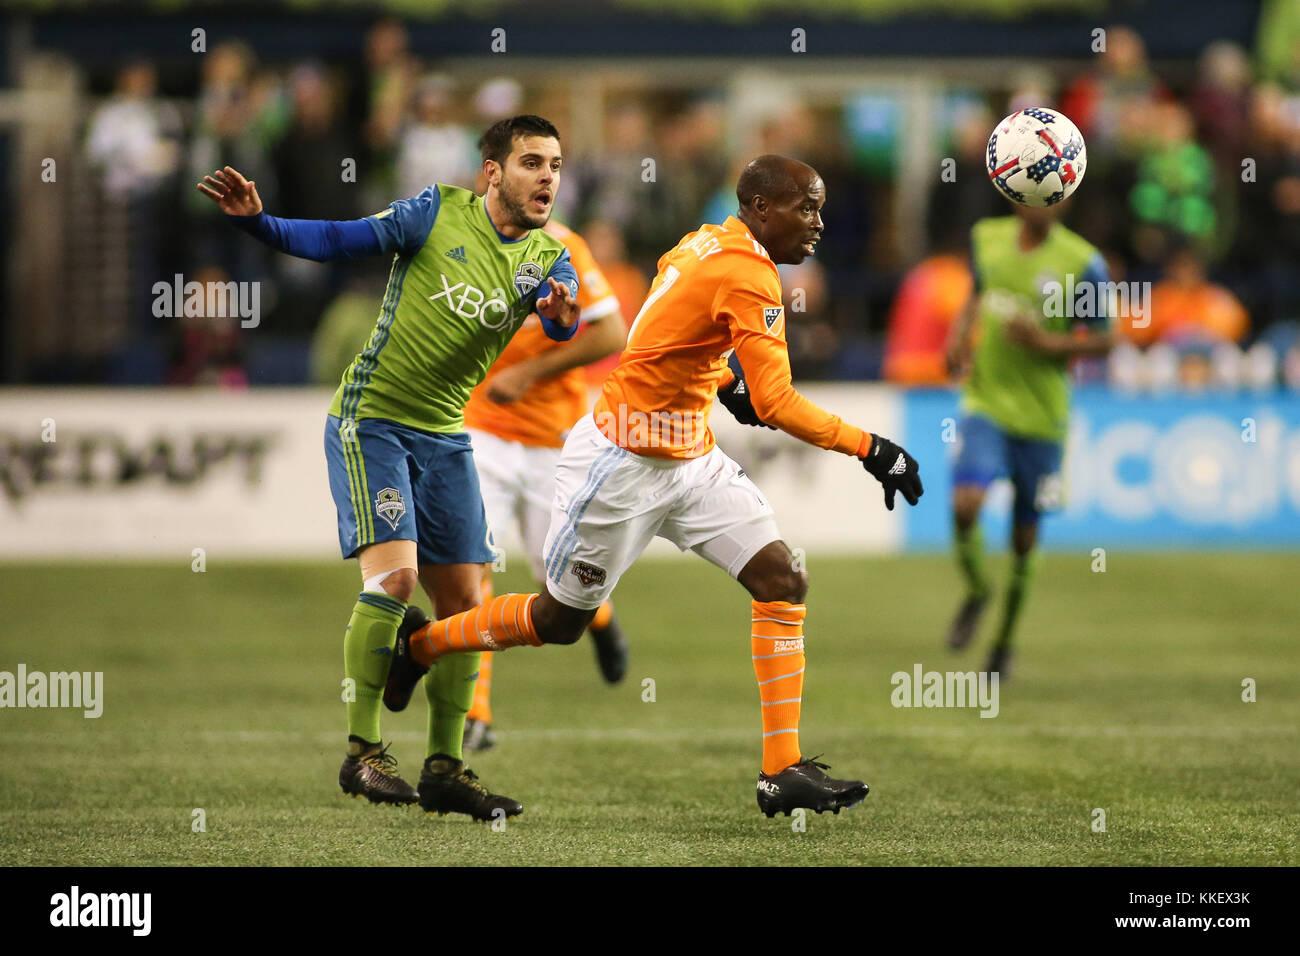 Seattle, WA, USA. 30th Nov, 2017. Houston Dynamo defender DaMarcus Beasley (7) and Seattle Sounders Victor Rodrguez - Stock Image